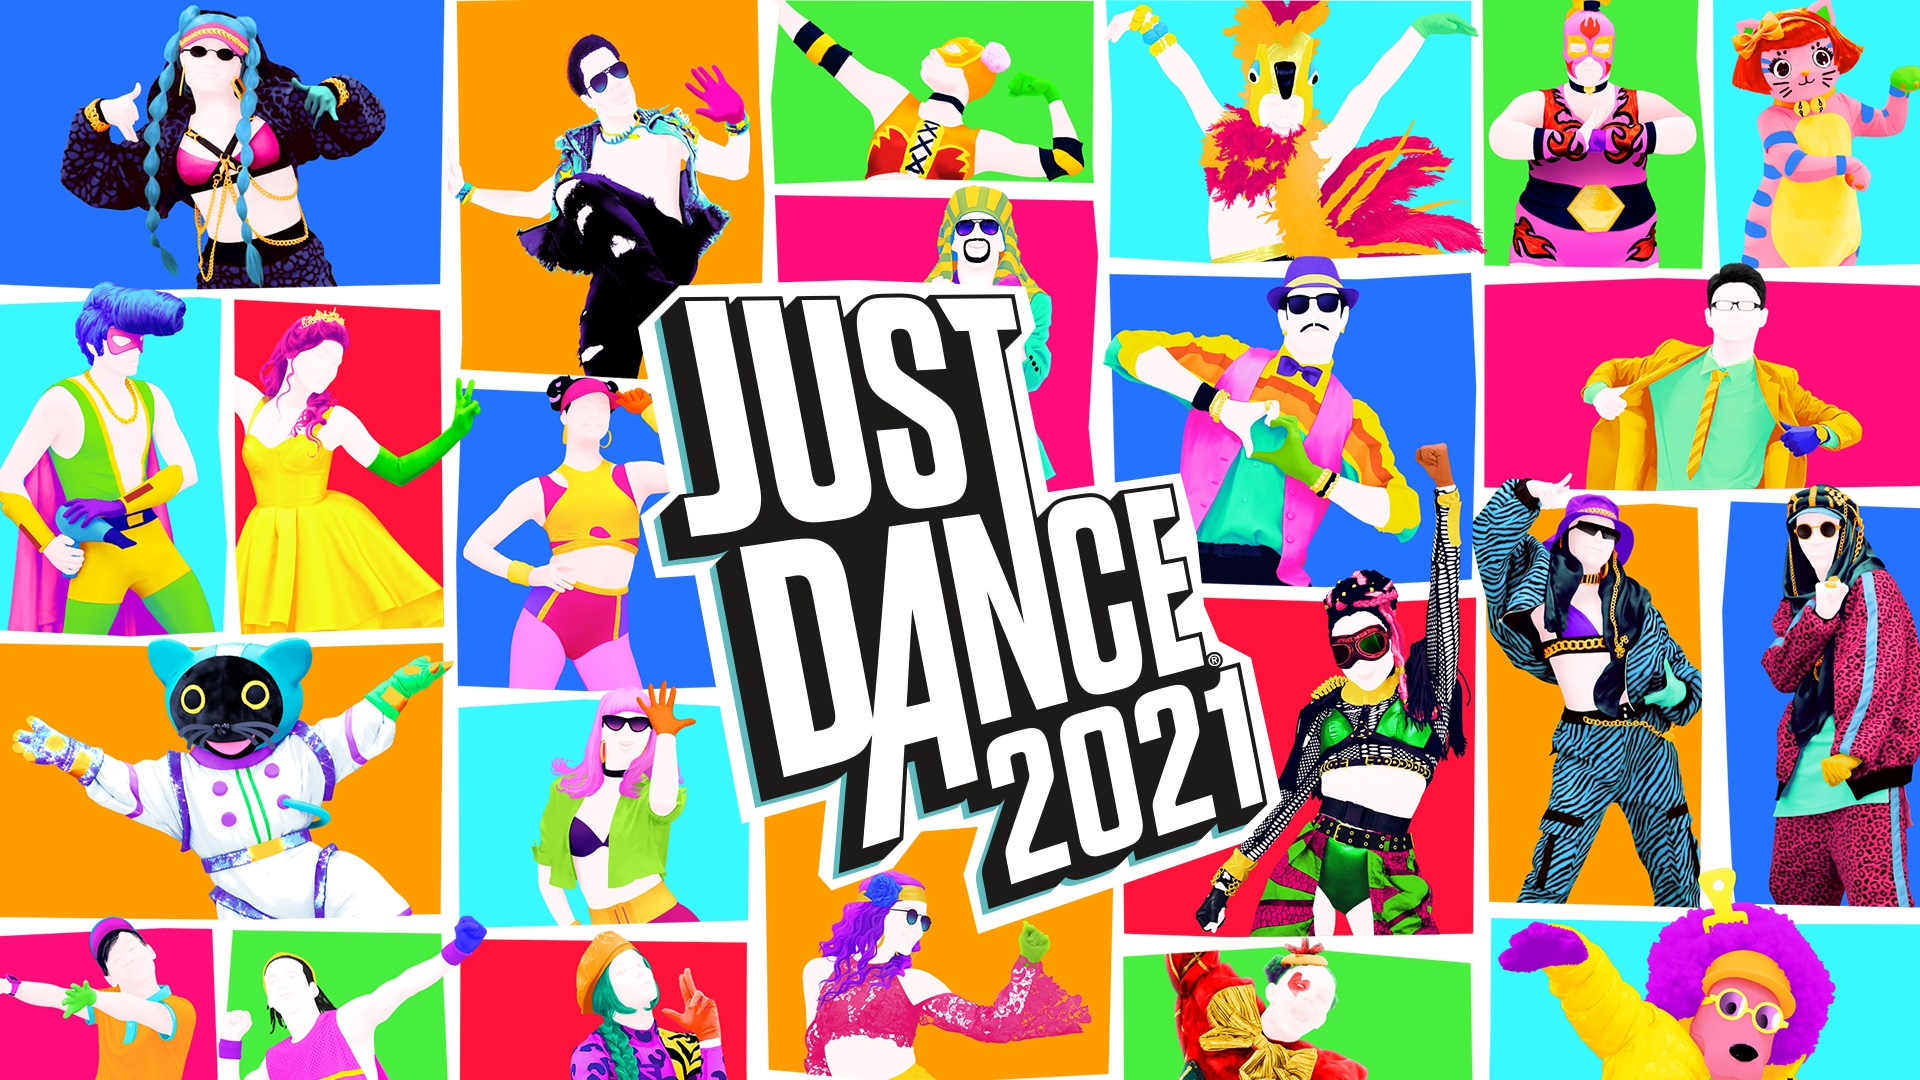 Just Dance 2021 Key Art